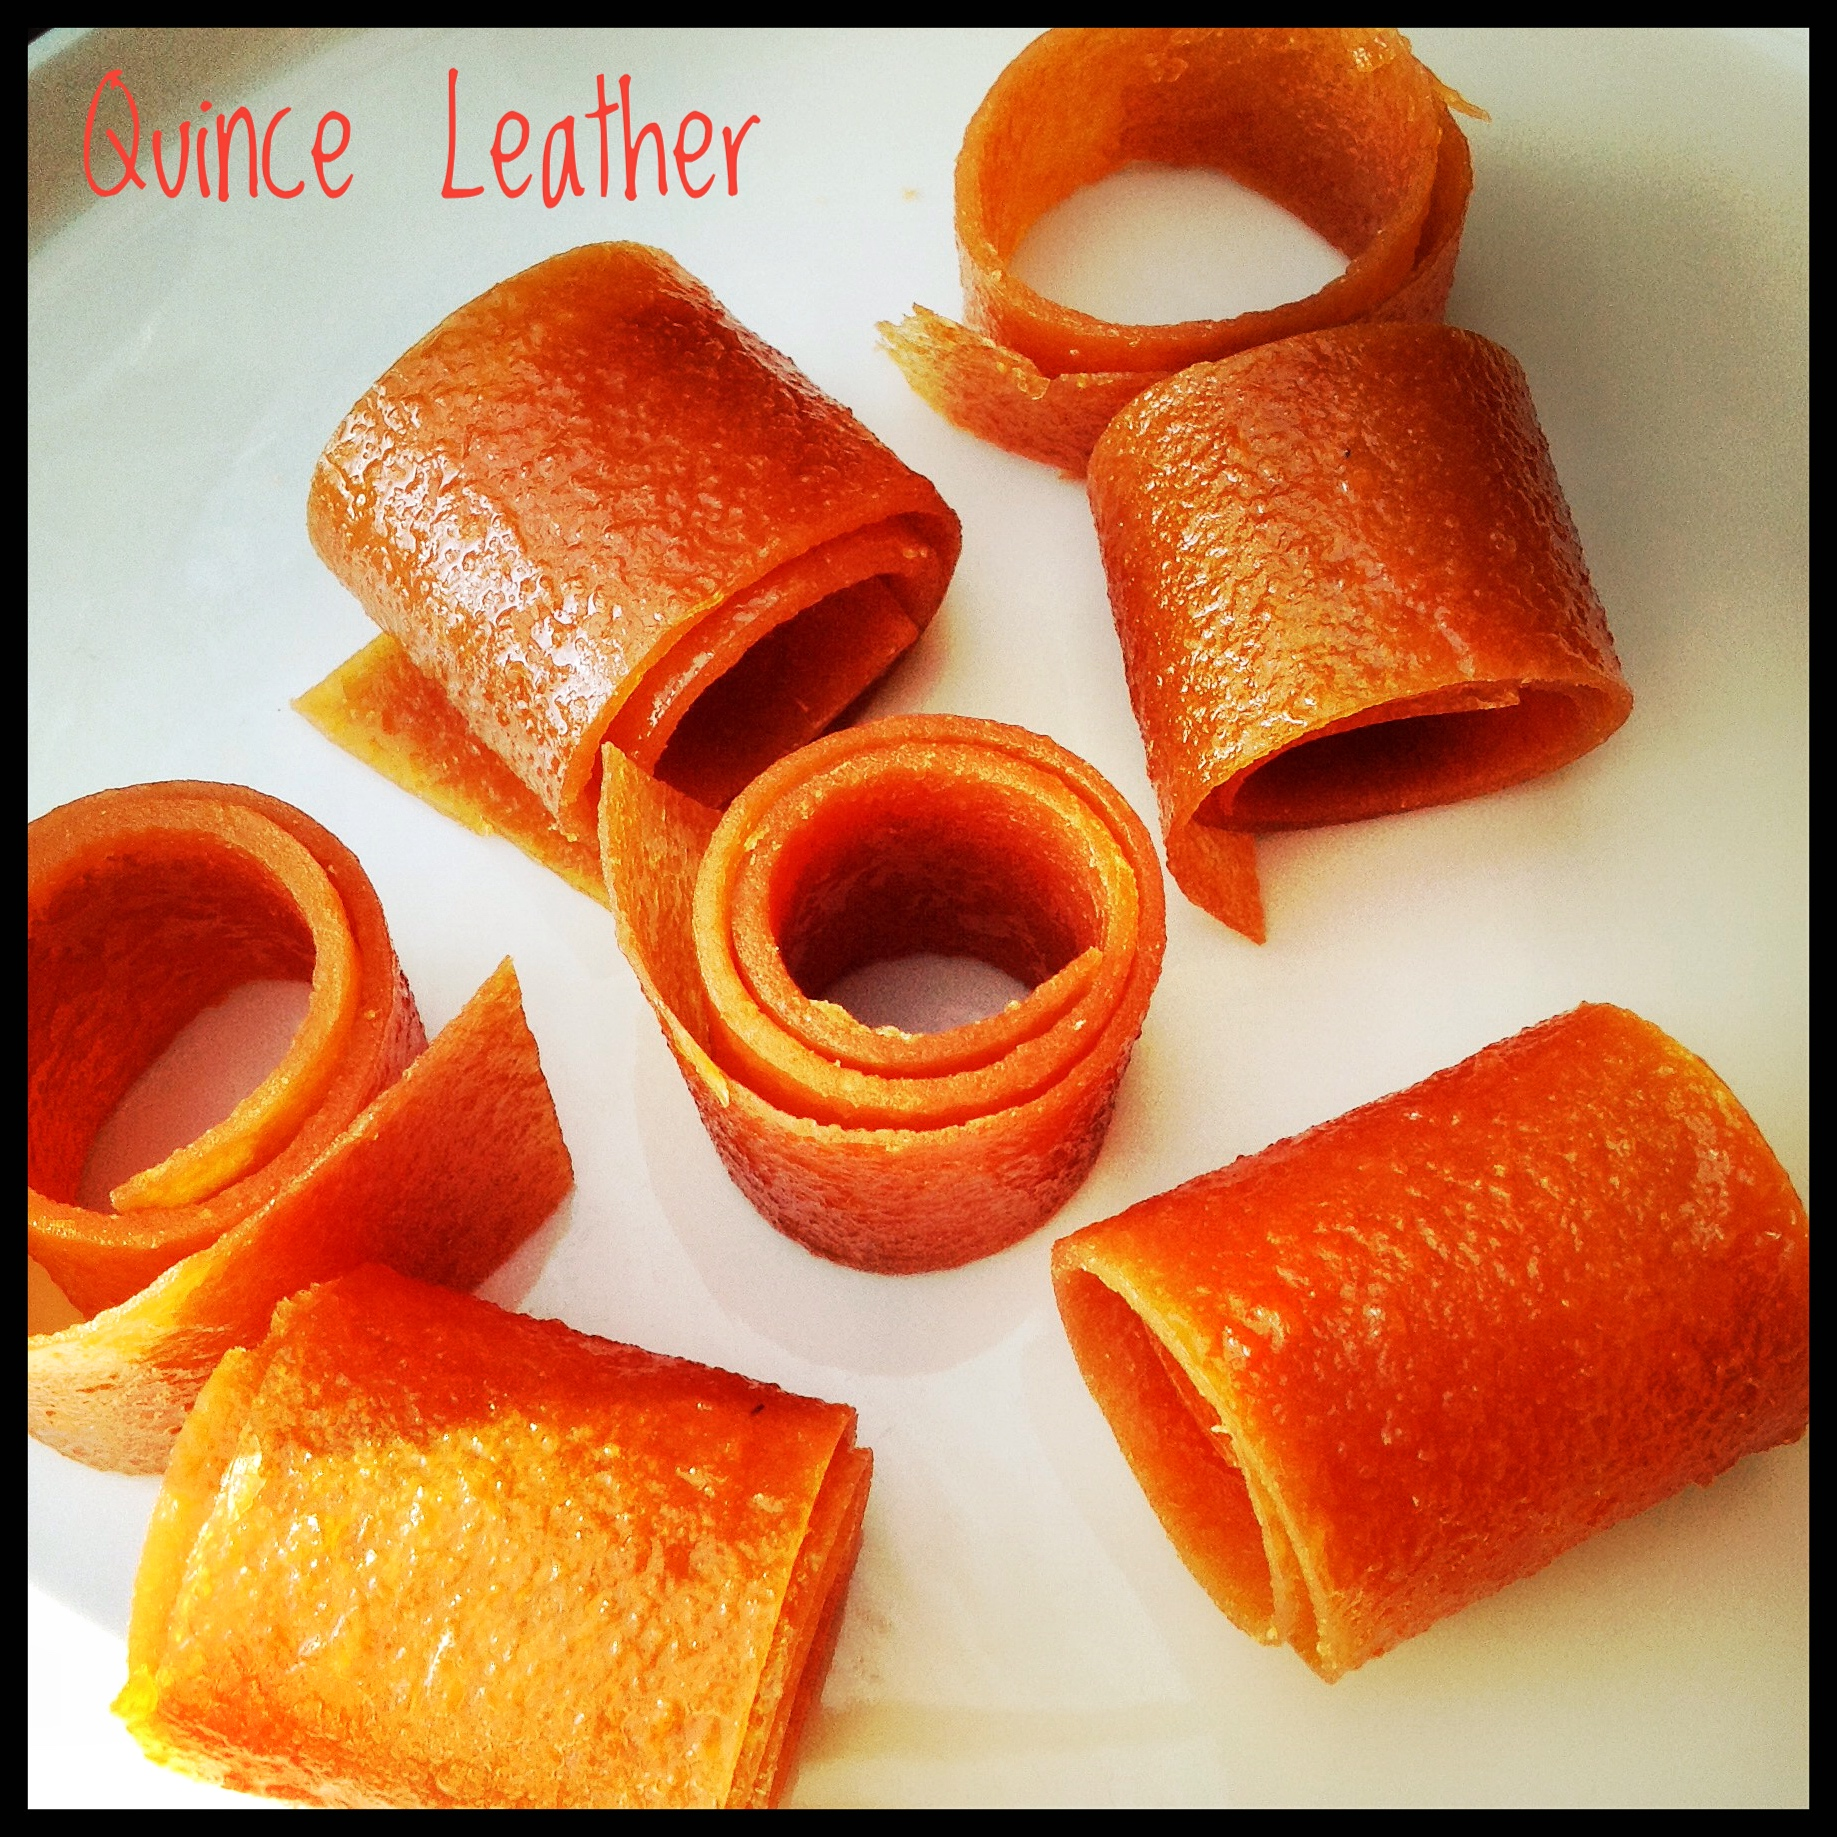 Recipe: How to Make Quince Leather